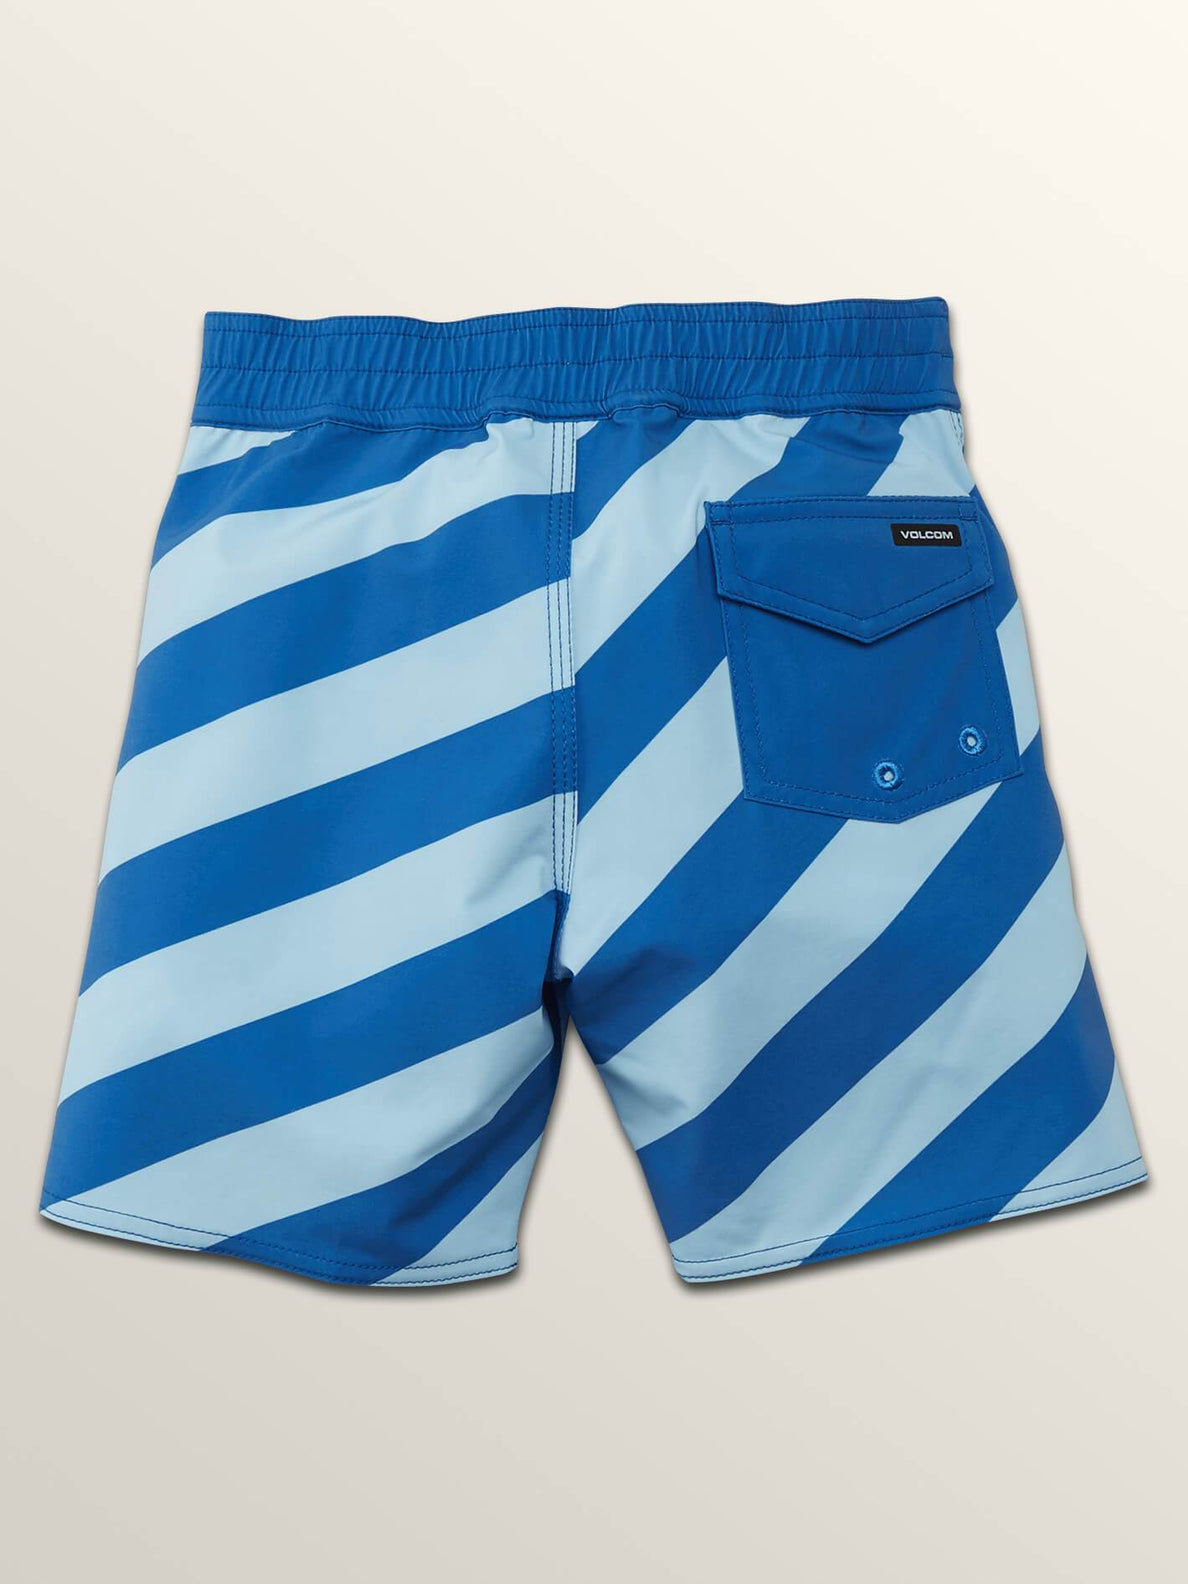 Little Boys Stripey Elastic Boardshorts In Arctic Blue, Back View